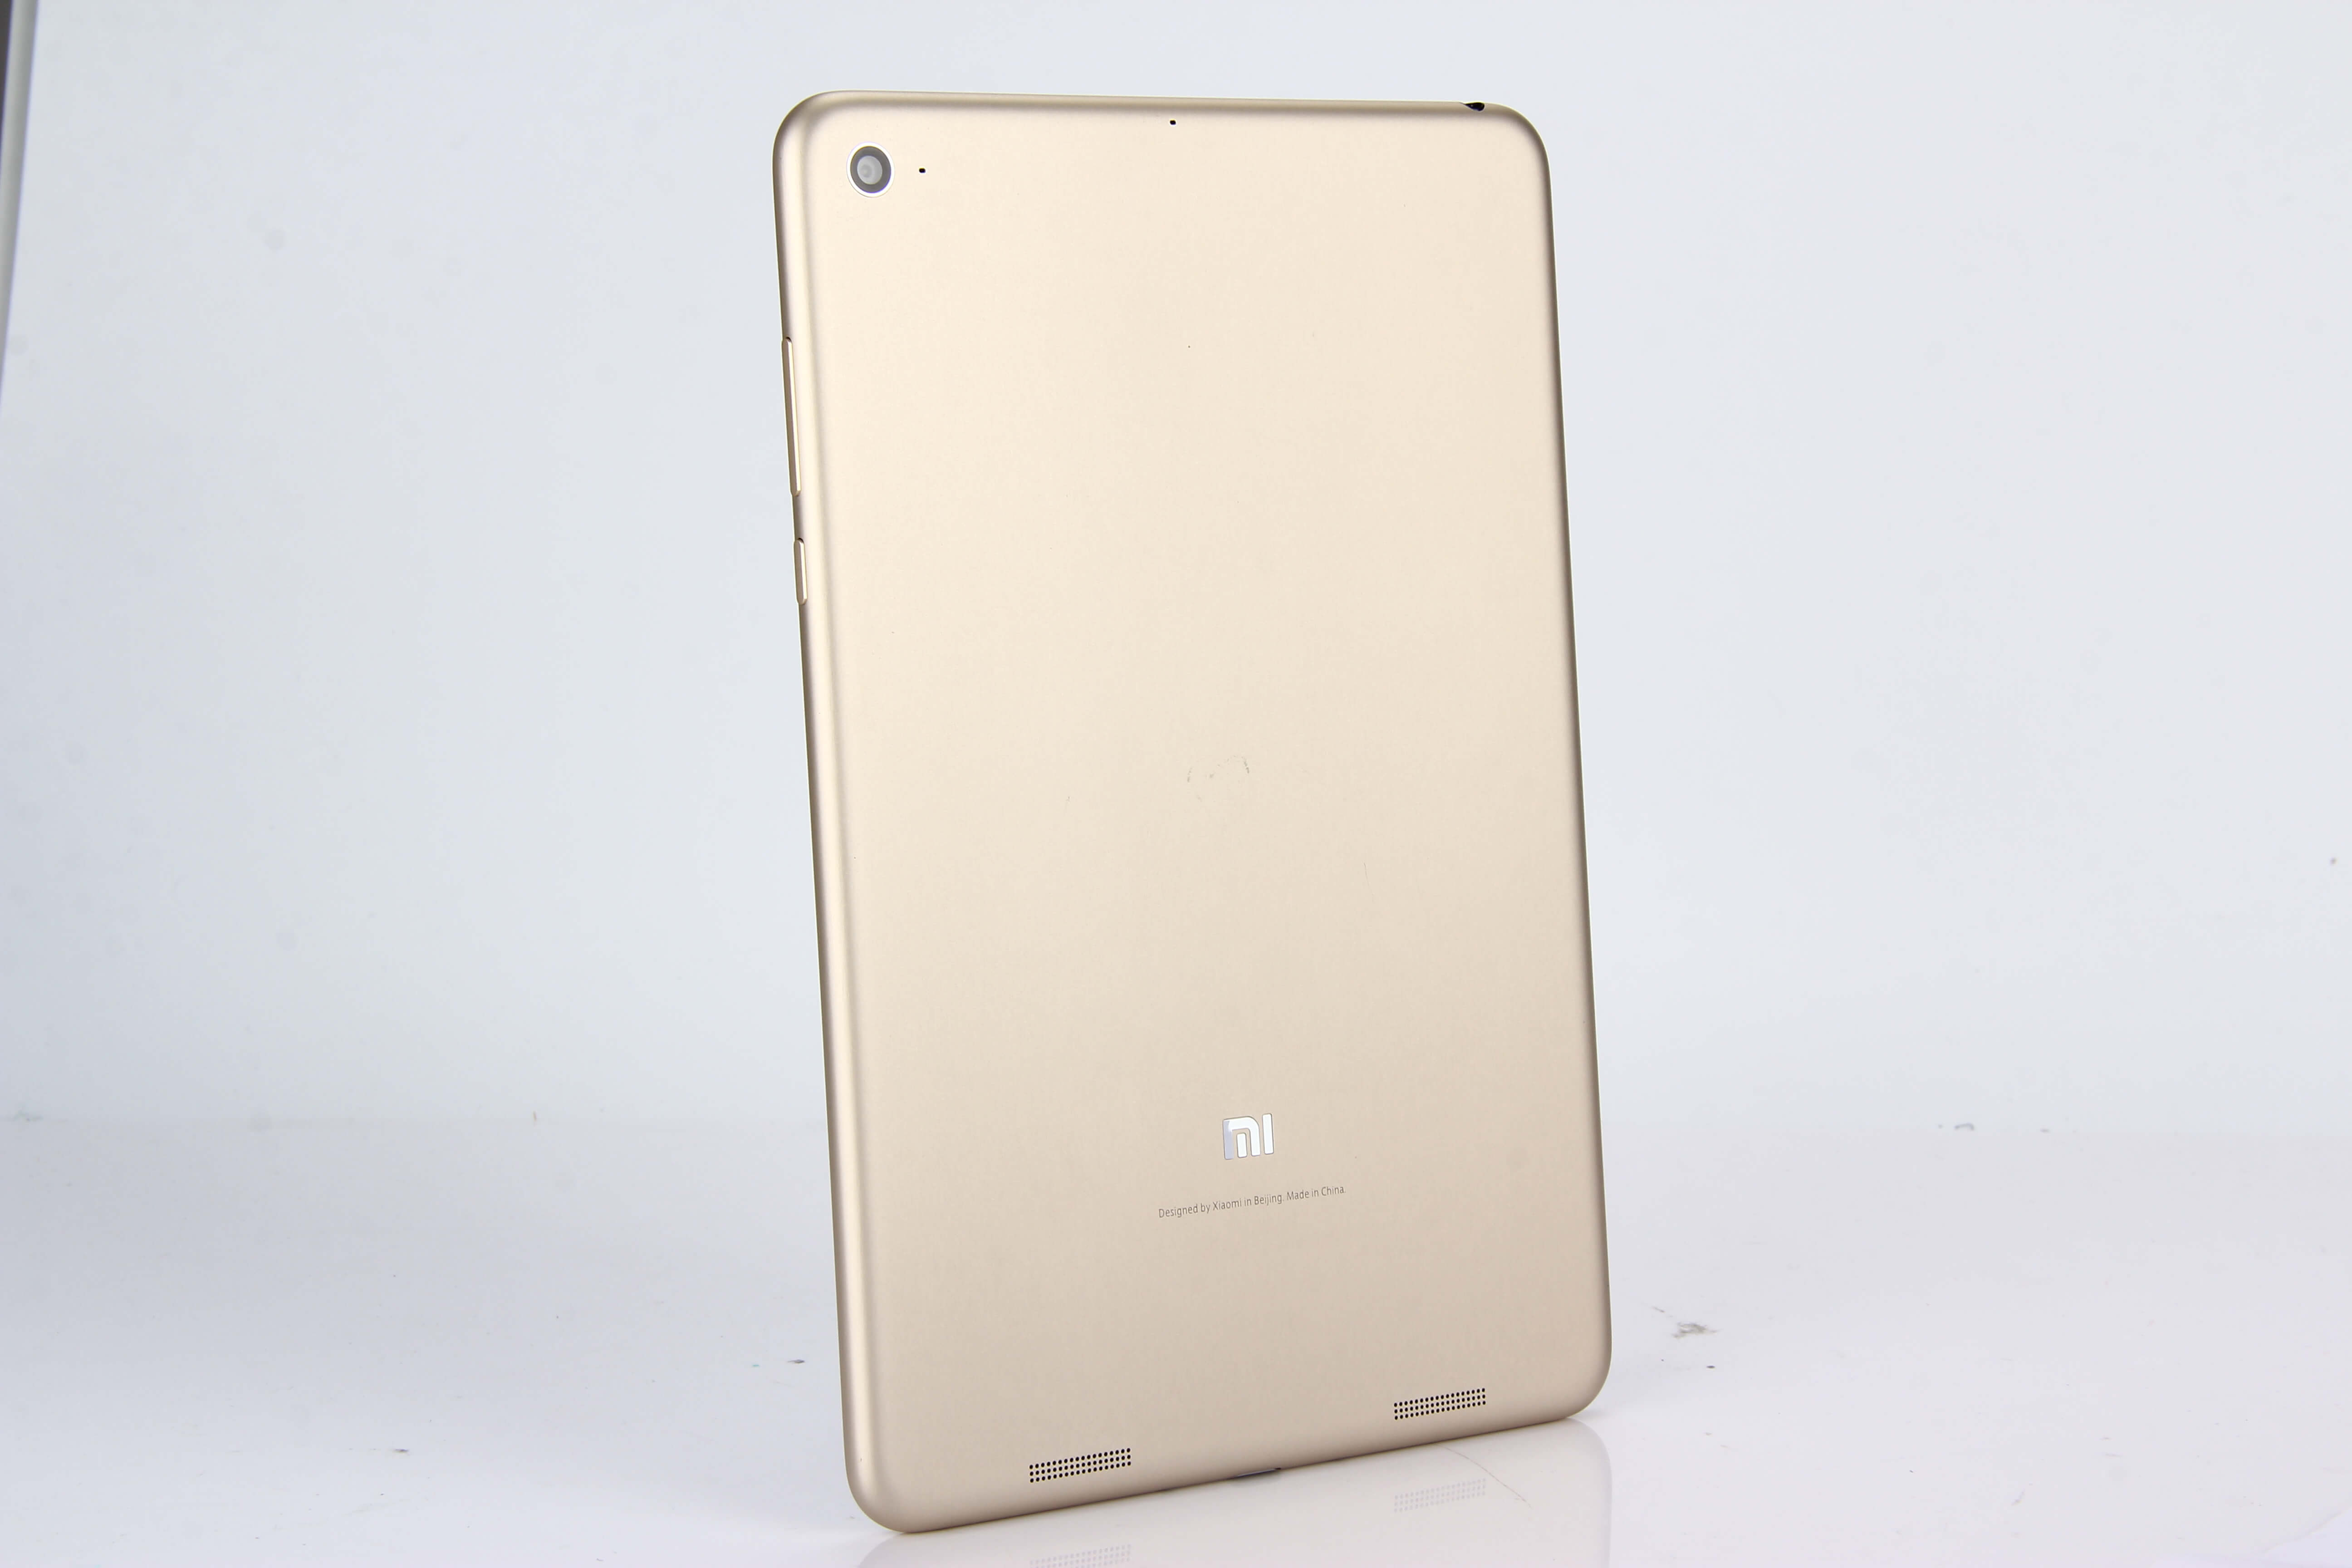 Xiaomi Mi Pad 2 unboxing pictures and GearBest pre-orders start at $248